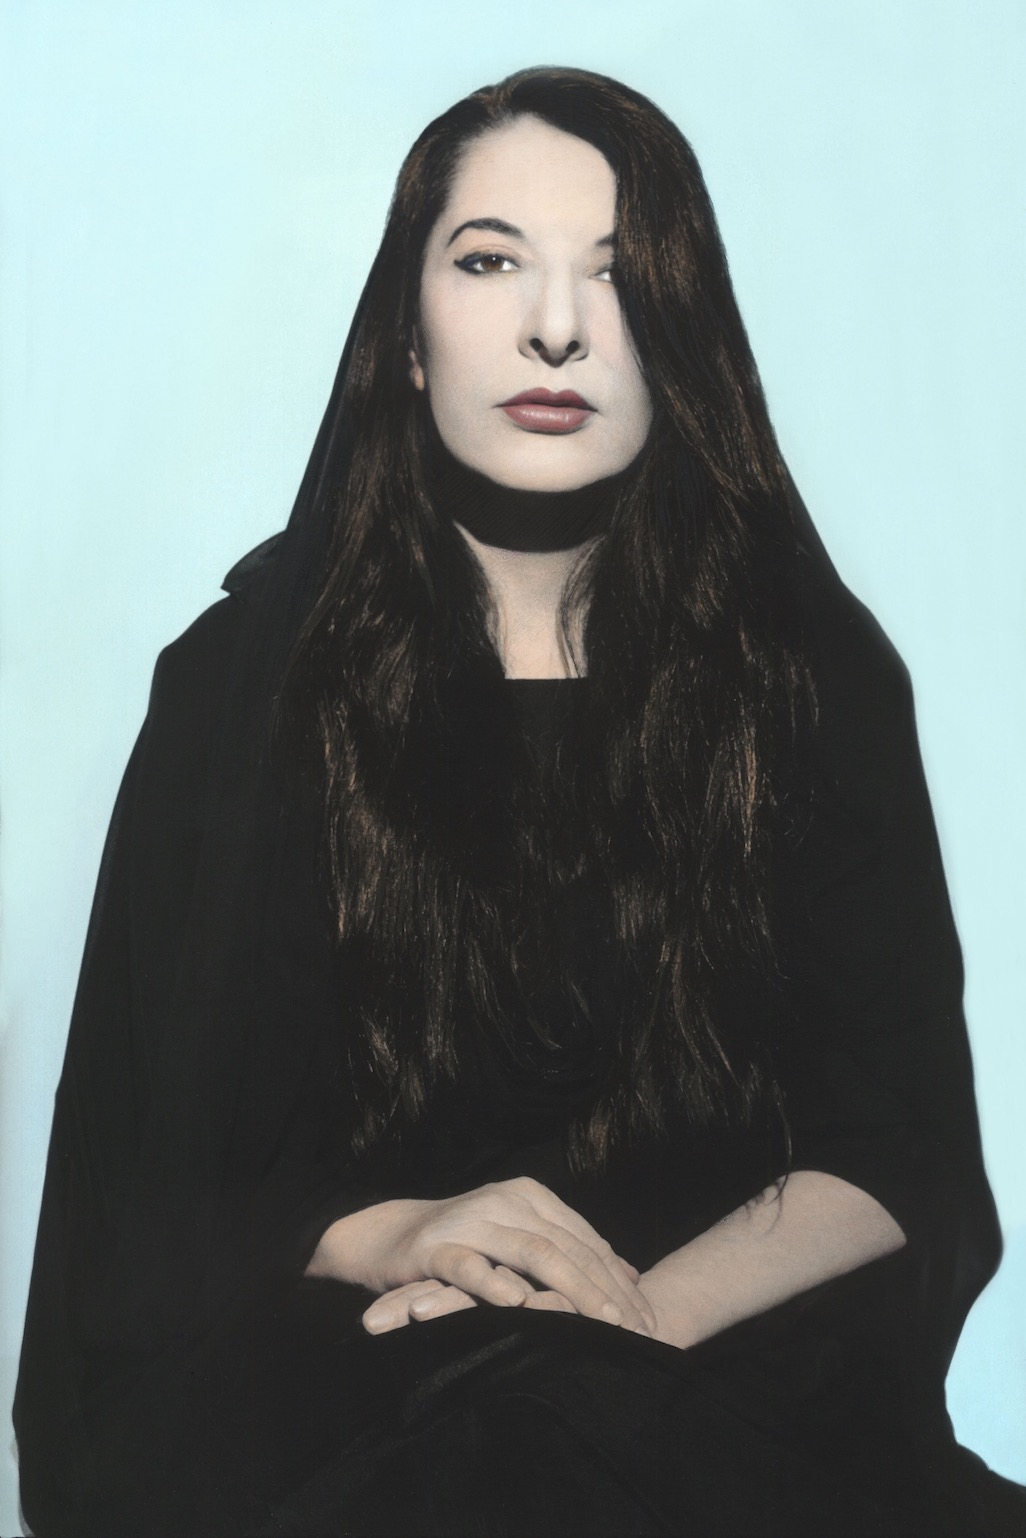 Youssef Nabil - Marina Abramović, New York 2011 Hand colored gelatin silver print Courtesy of the Artist and Nathalie Obadia Gallery, Paris/ Brussels